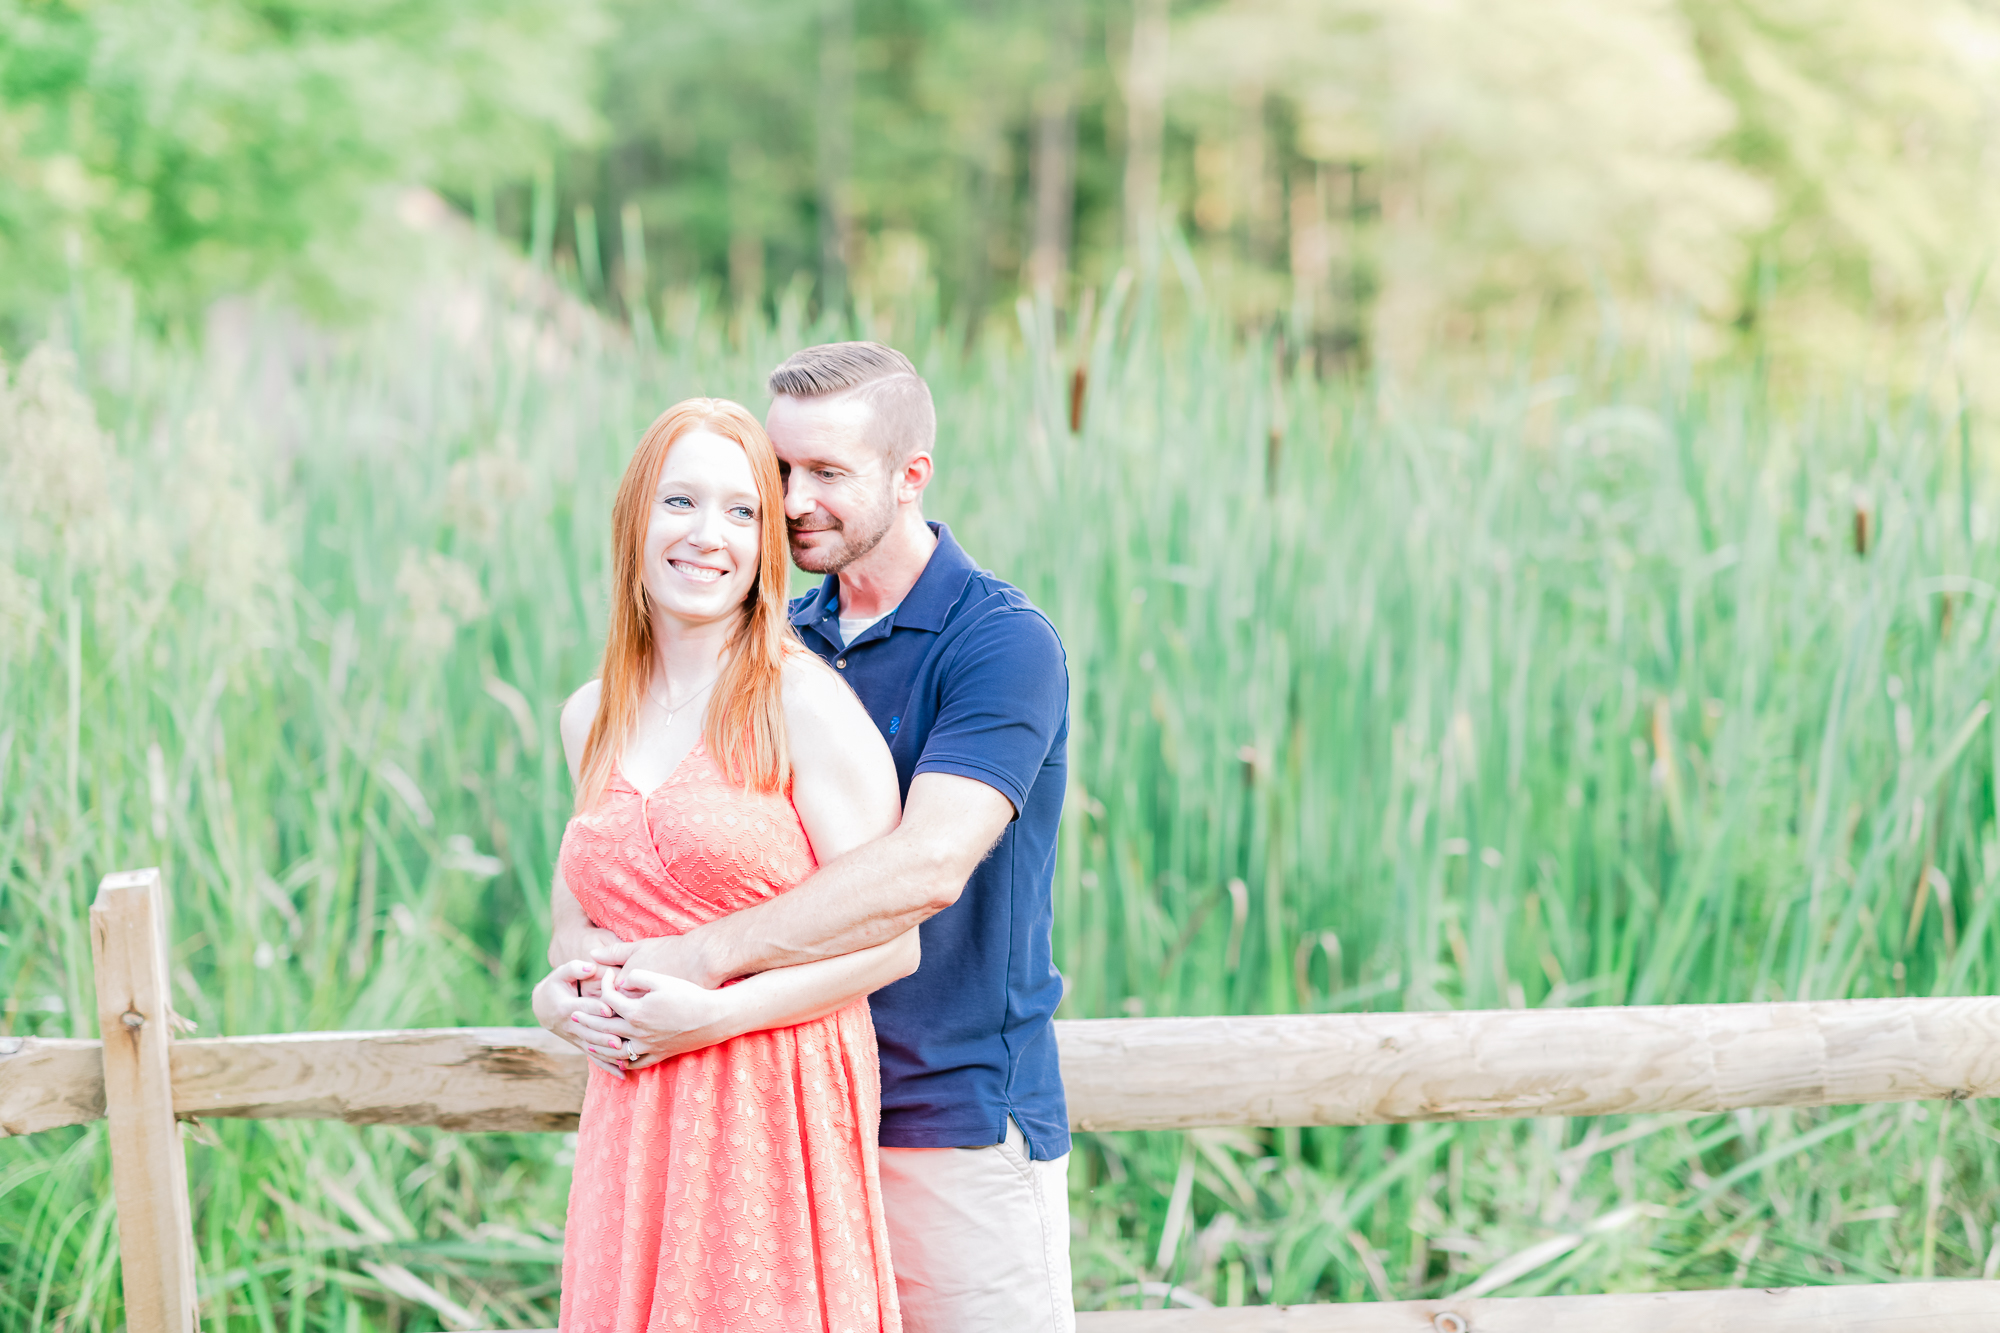 AB Favorites_Katy+Brian_Engagement Session_Brecksville Reservation_Brecksville_Ohio-2.jpg